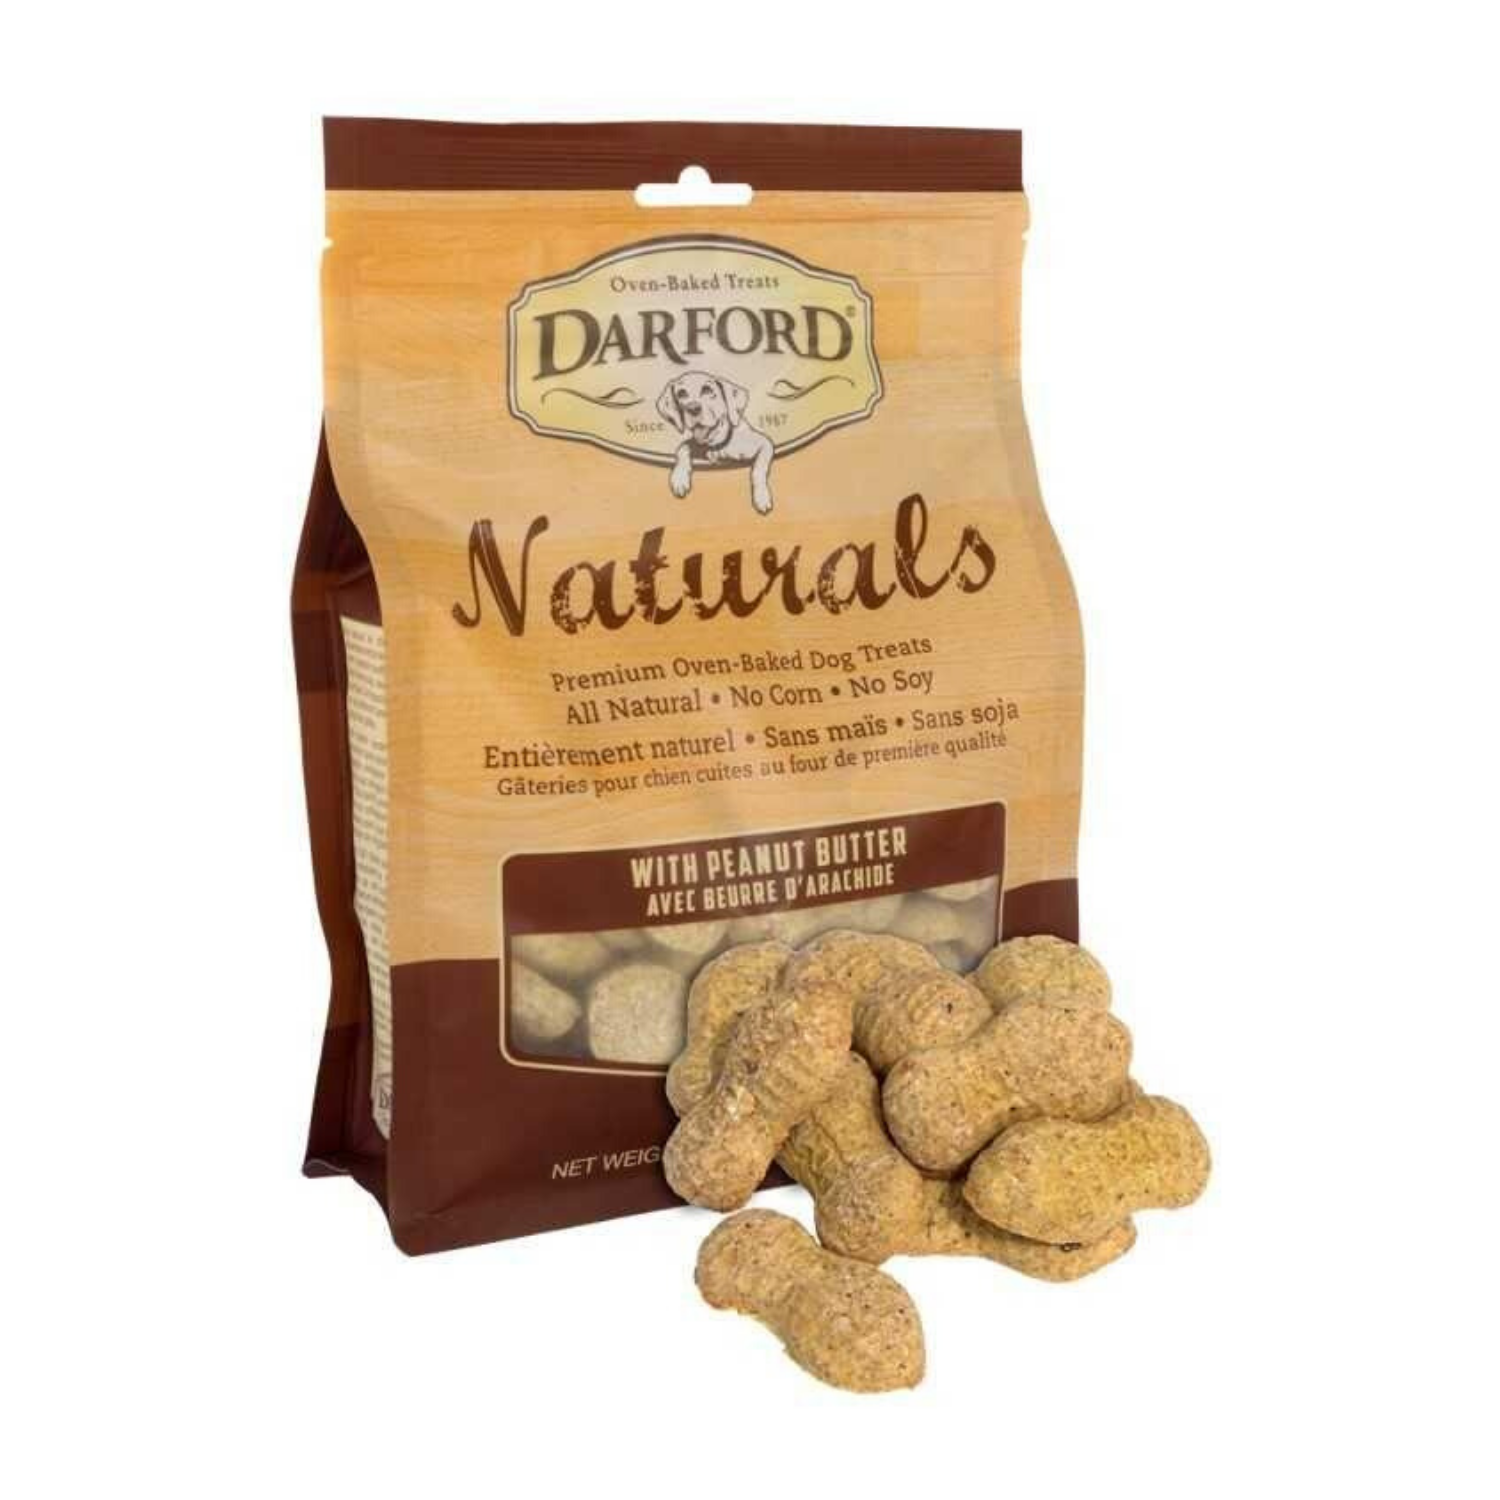 Darford Naturals (Peanut Butter) for Dogs - 170g / 400g